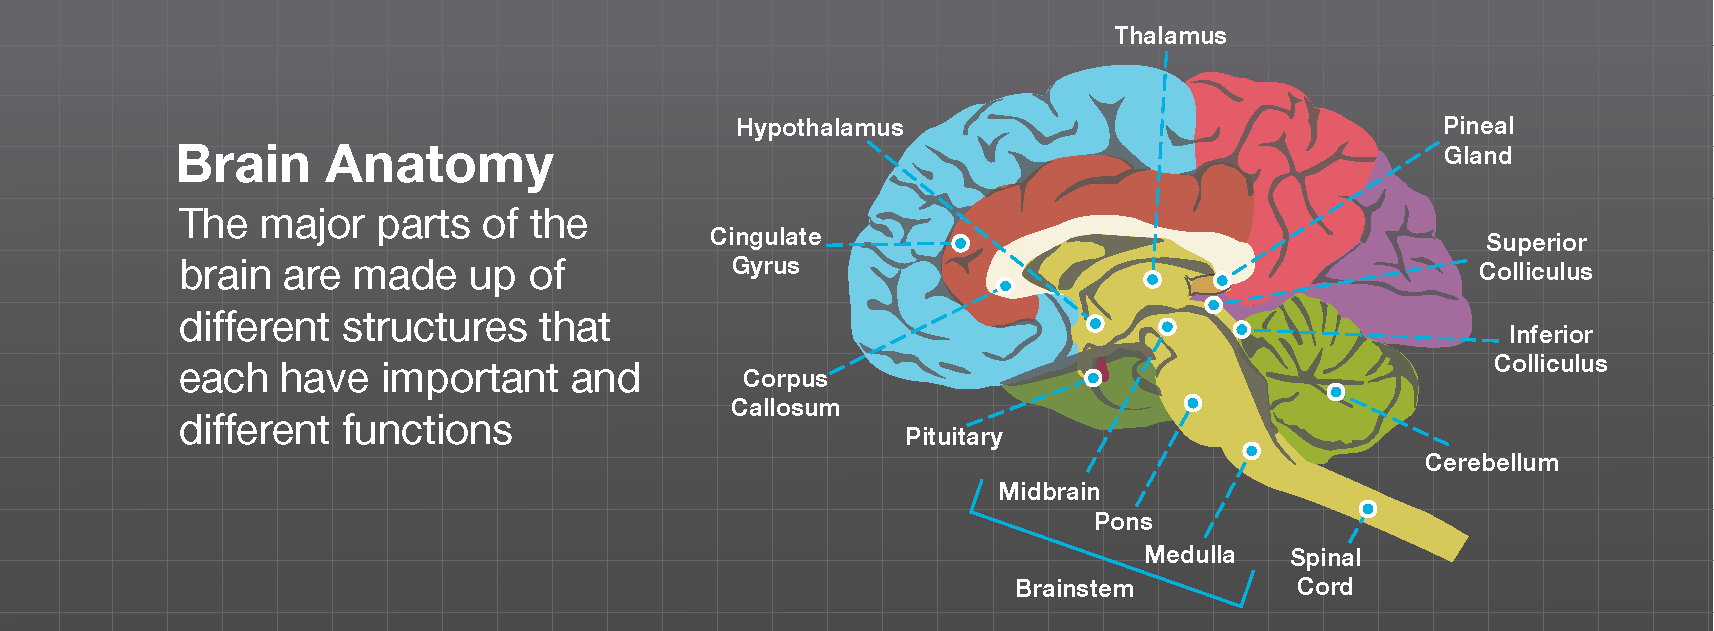 Brain Anatomy - Brainlab.org